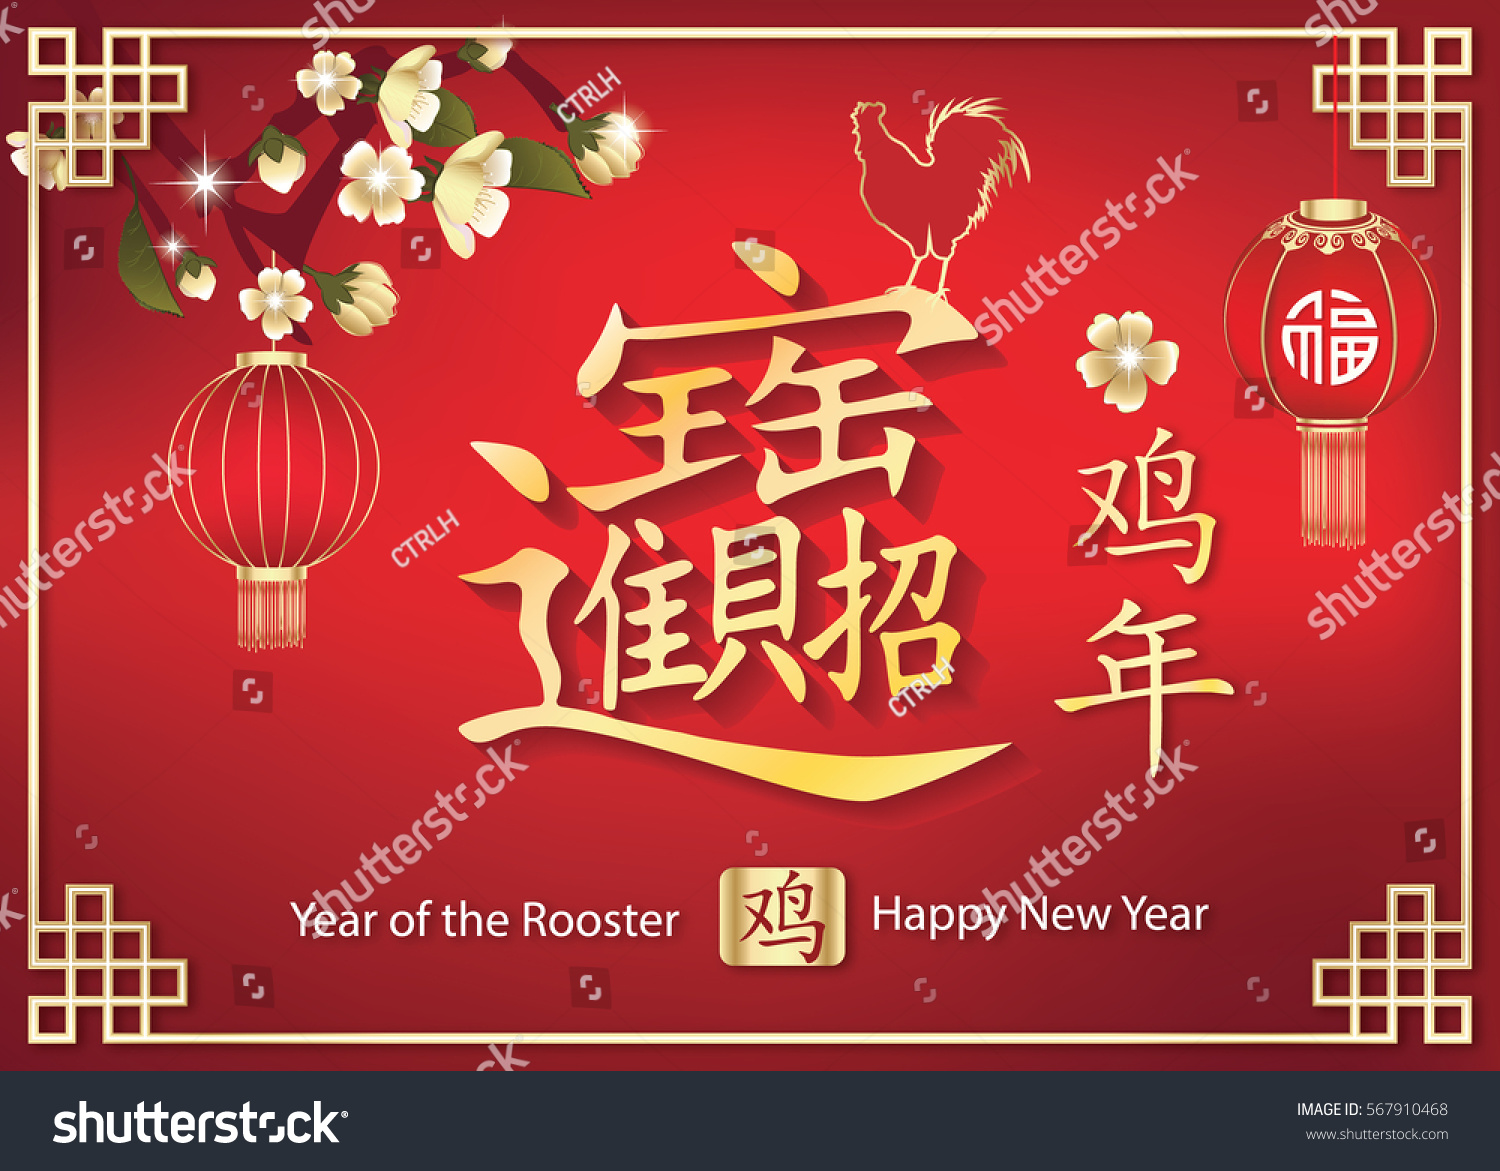 Chinese new year rooster greeting card stock illustration chinese new year of the rooster greeting card middle symbol means wealth and prosperity kristyandbryce Choice Image